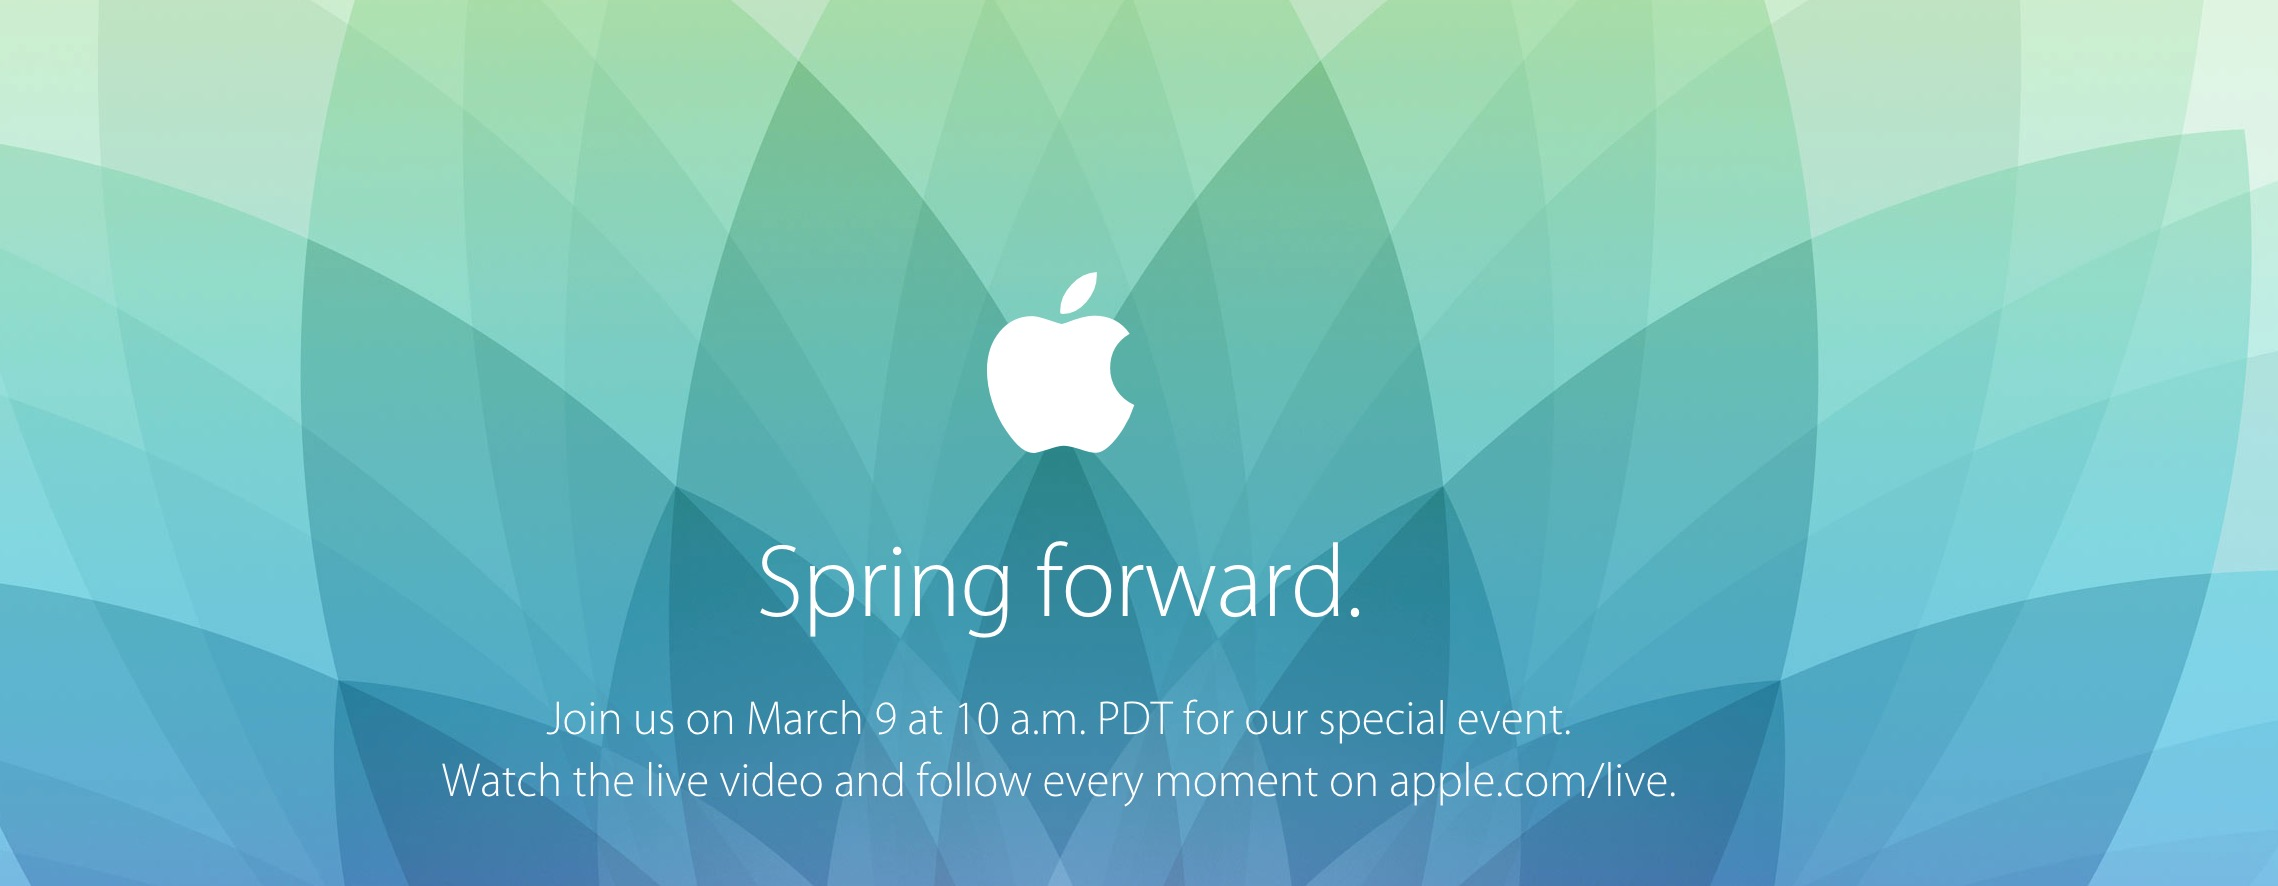 apple spring forward 2015